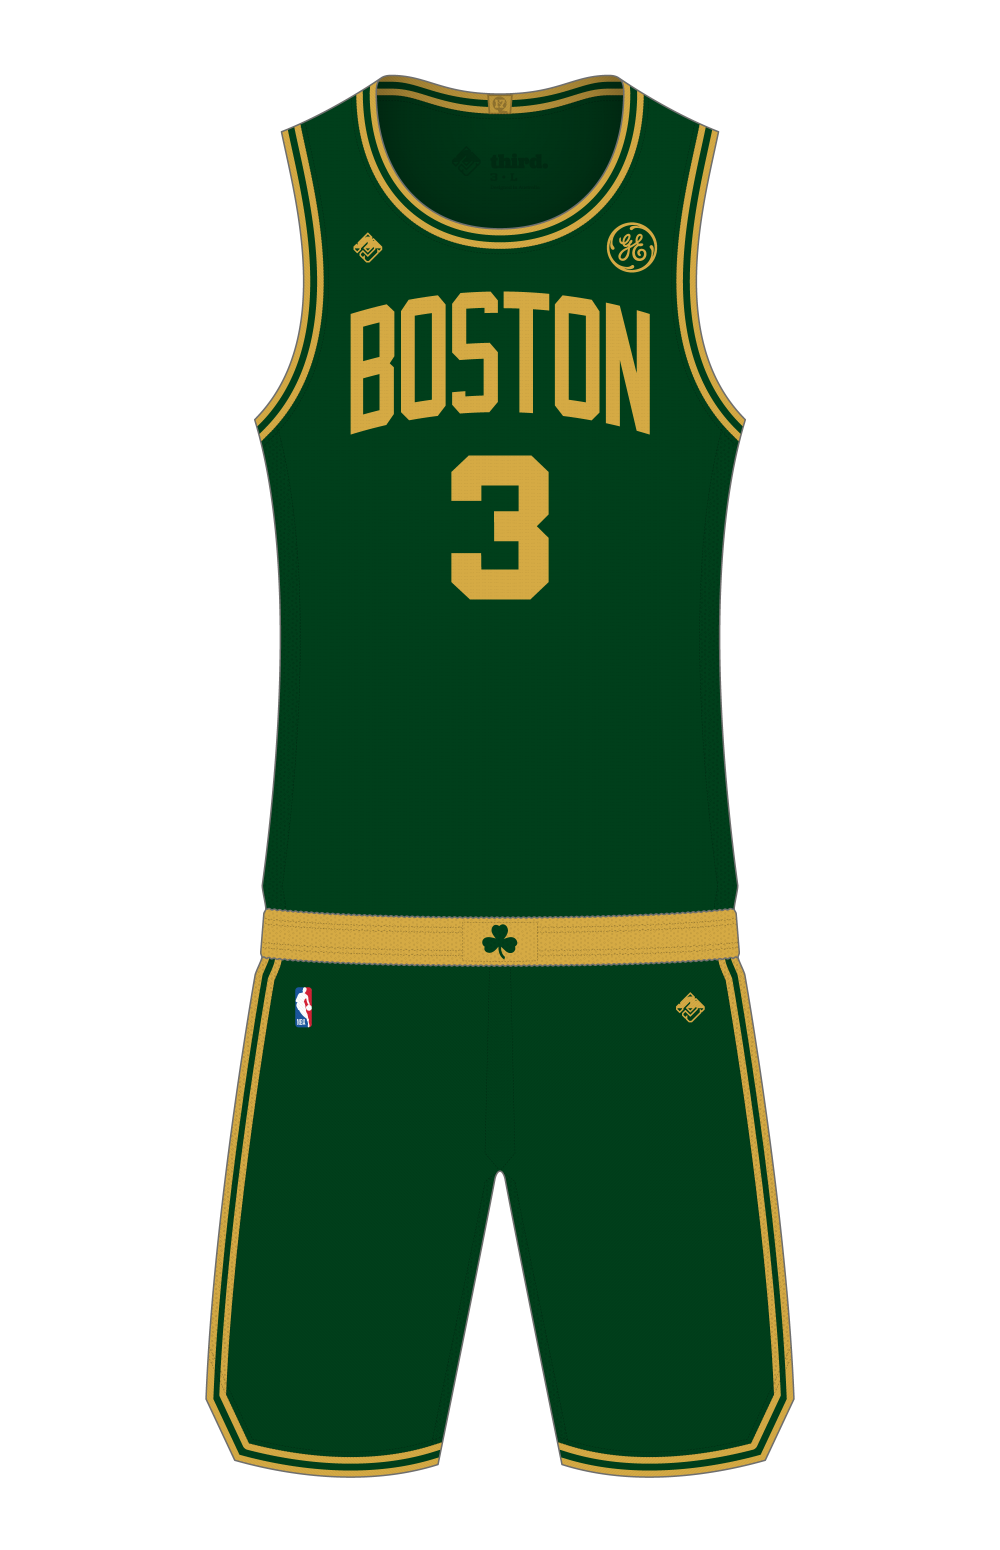 Boston Celtics Statement Edition